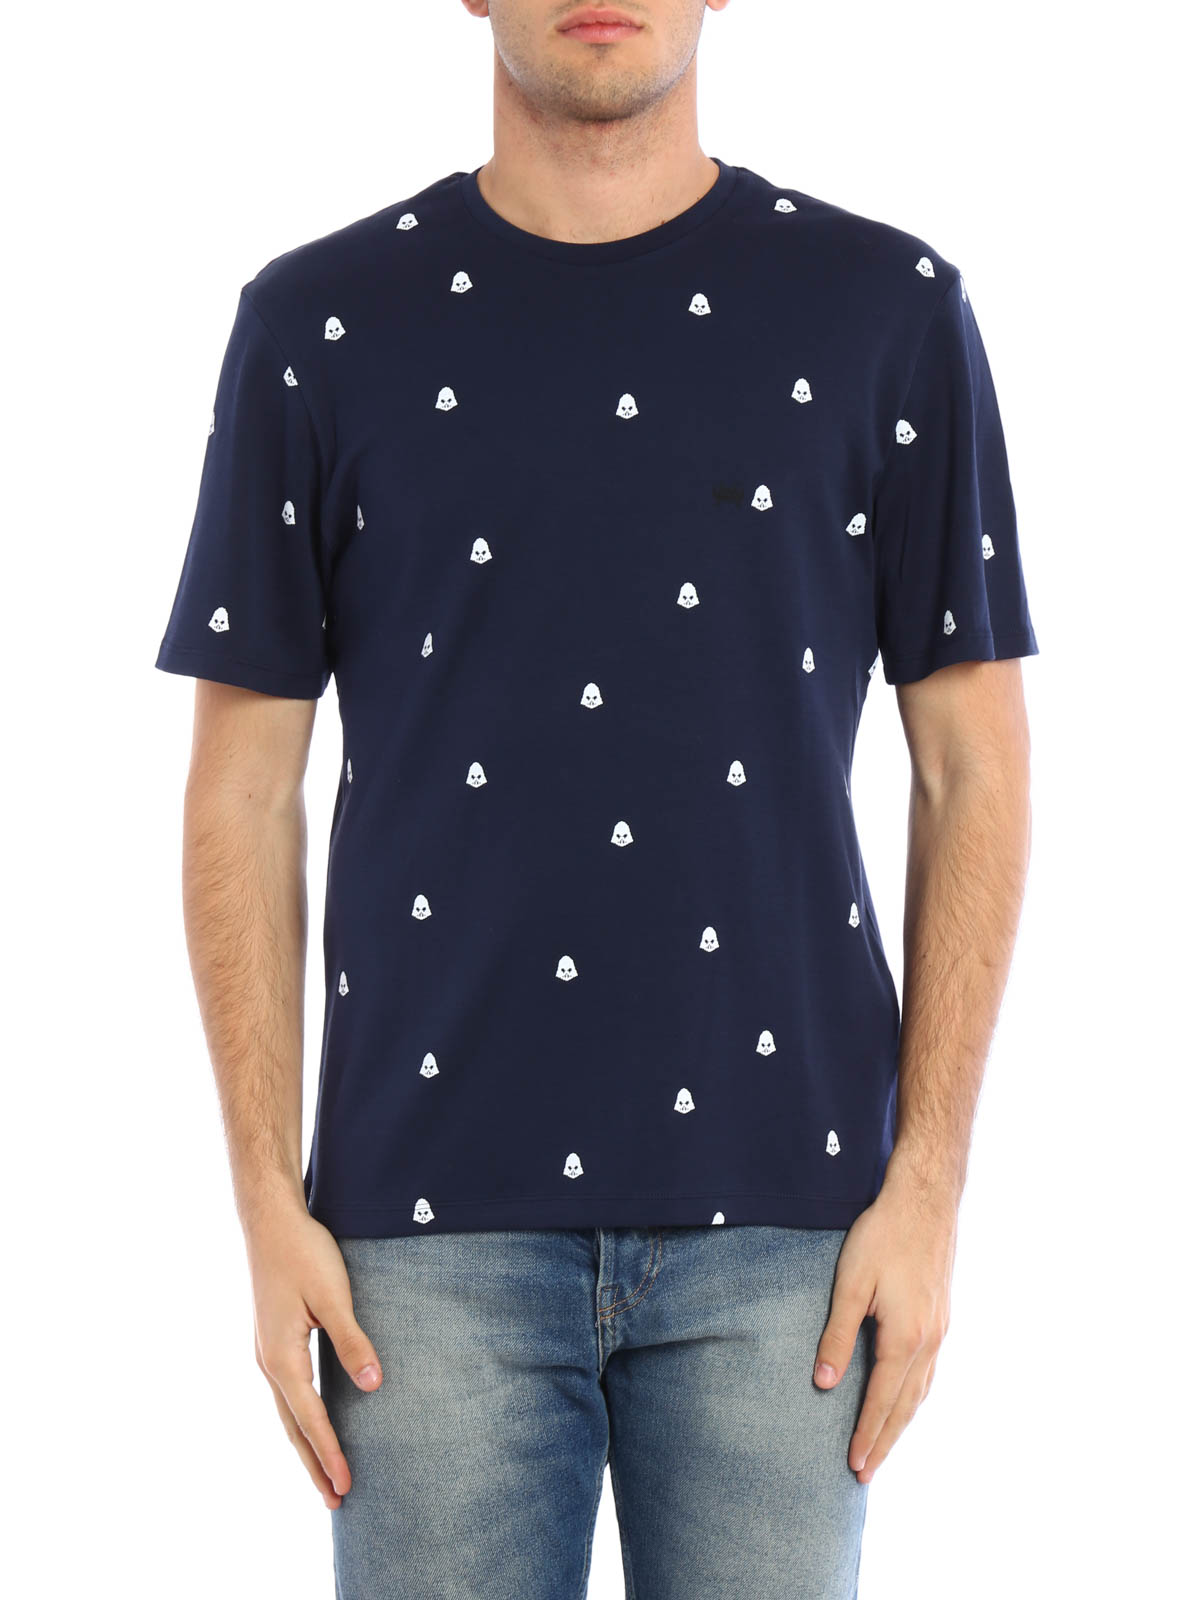 All over printed t shirt by neil barrett t shirts ikrix for T shirt printers online